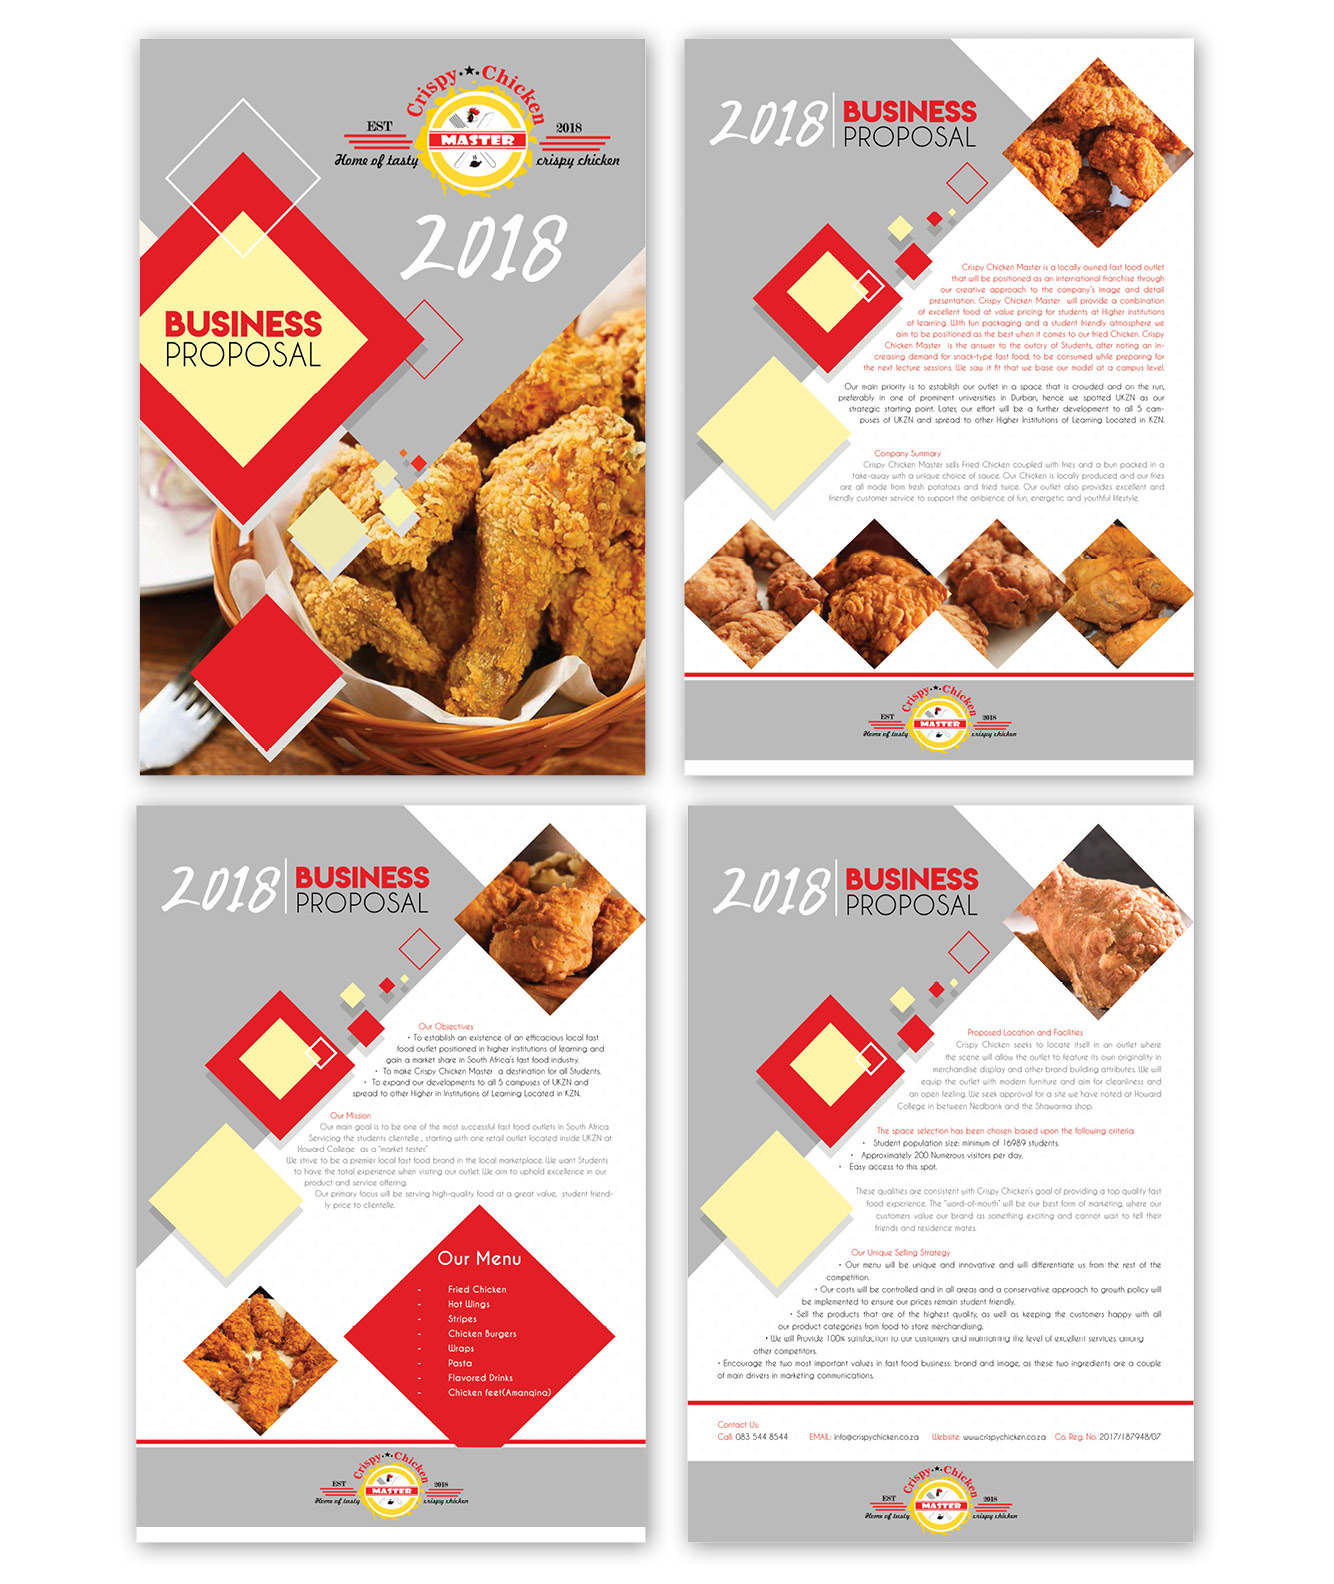 Crispy Chicken Company Profile Design